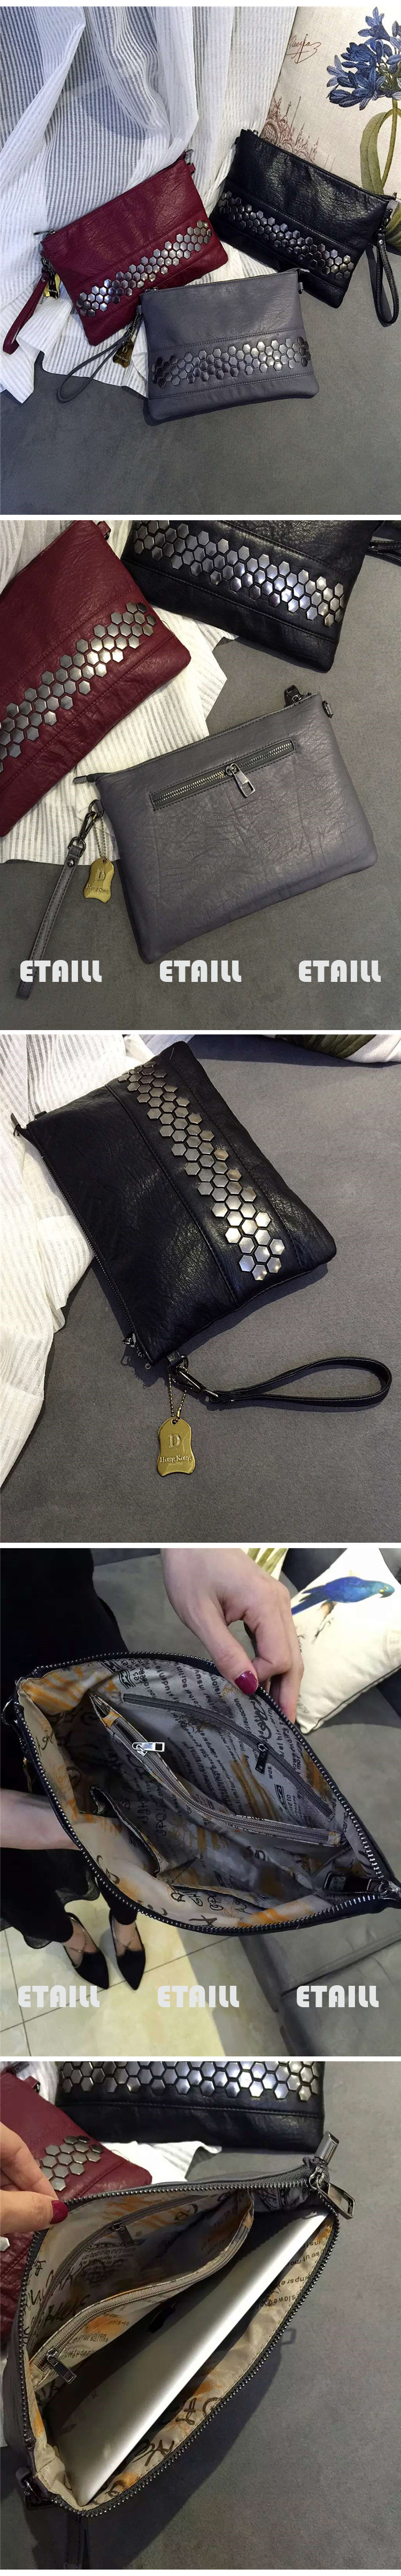 2016 Fashion Women\'s Black Studded Clutch Bags